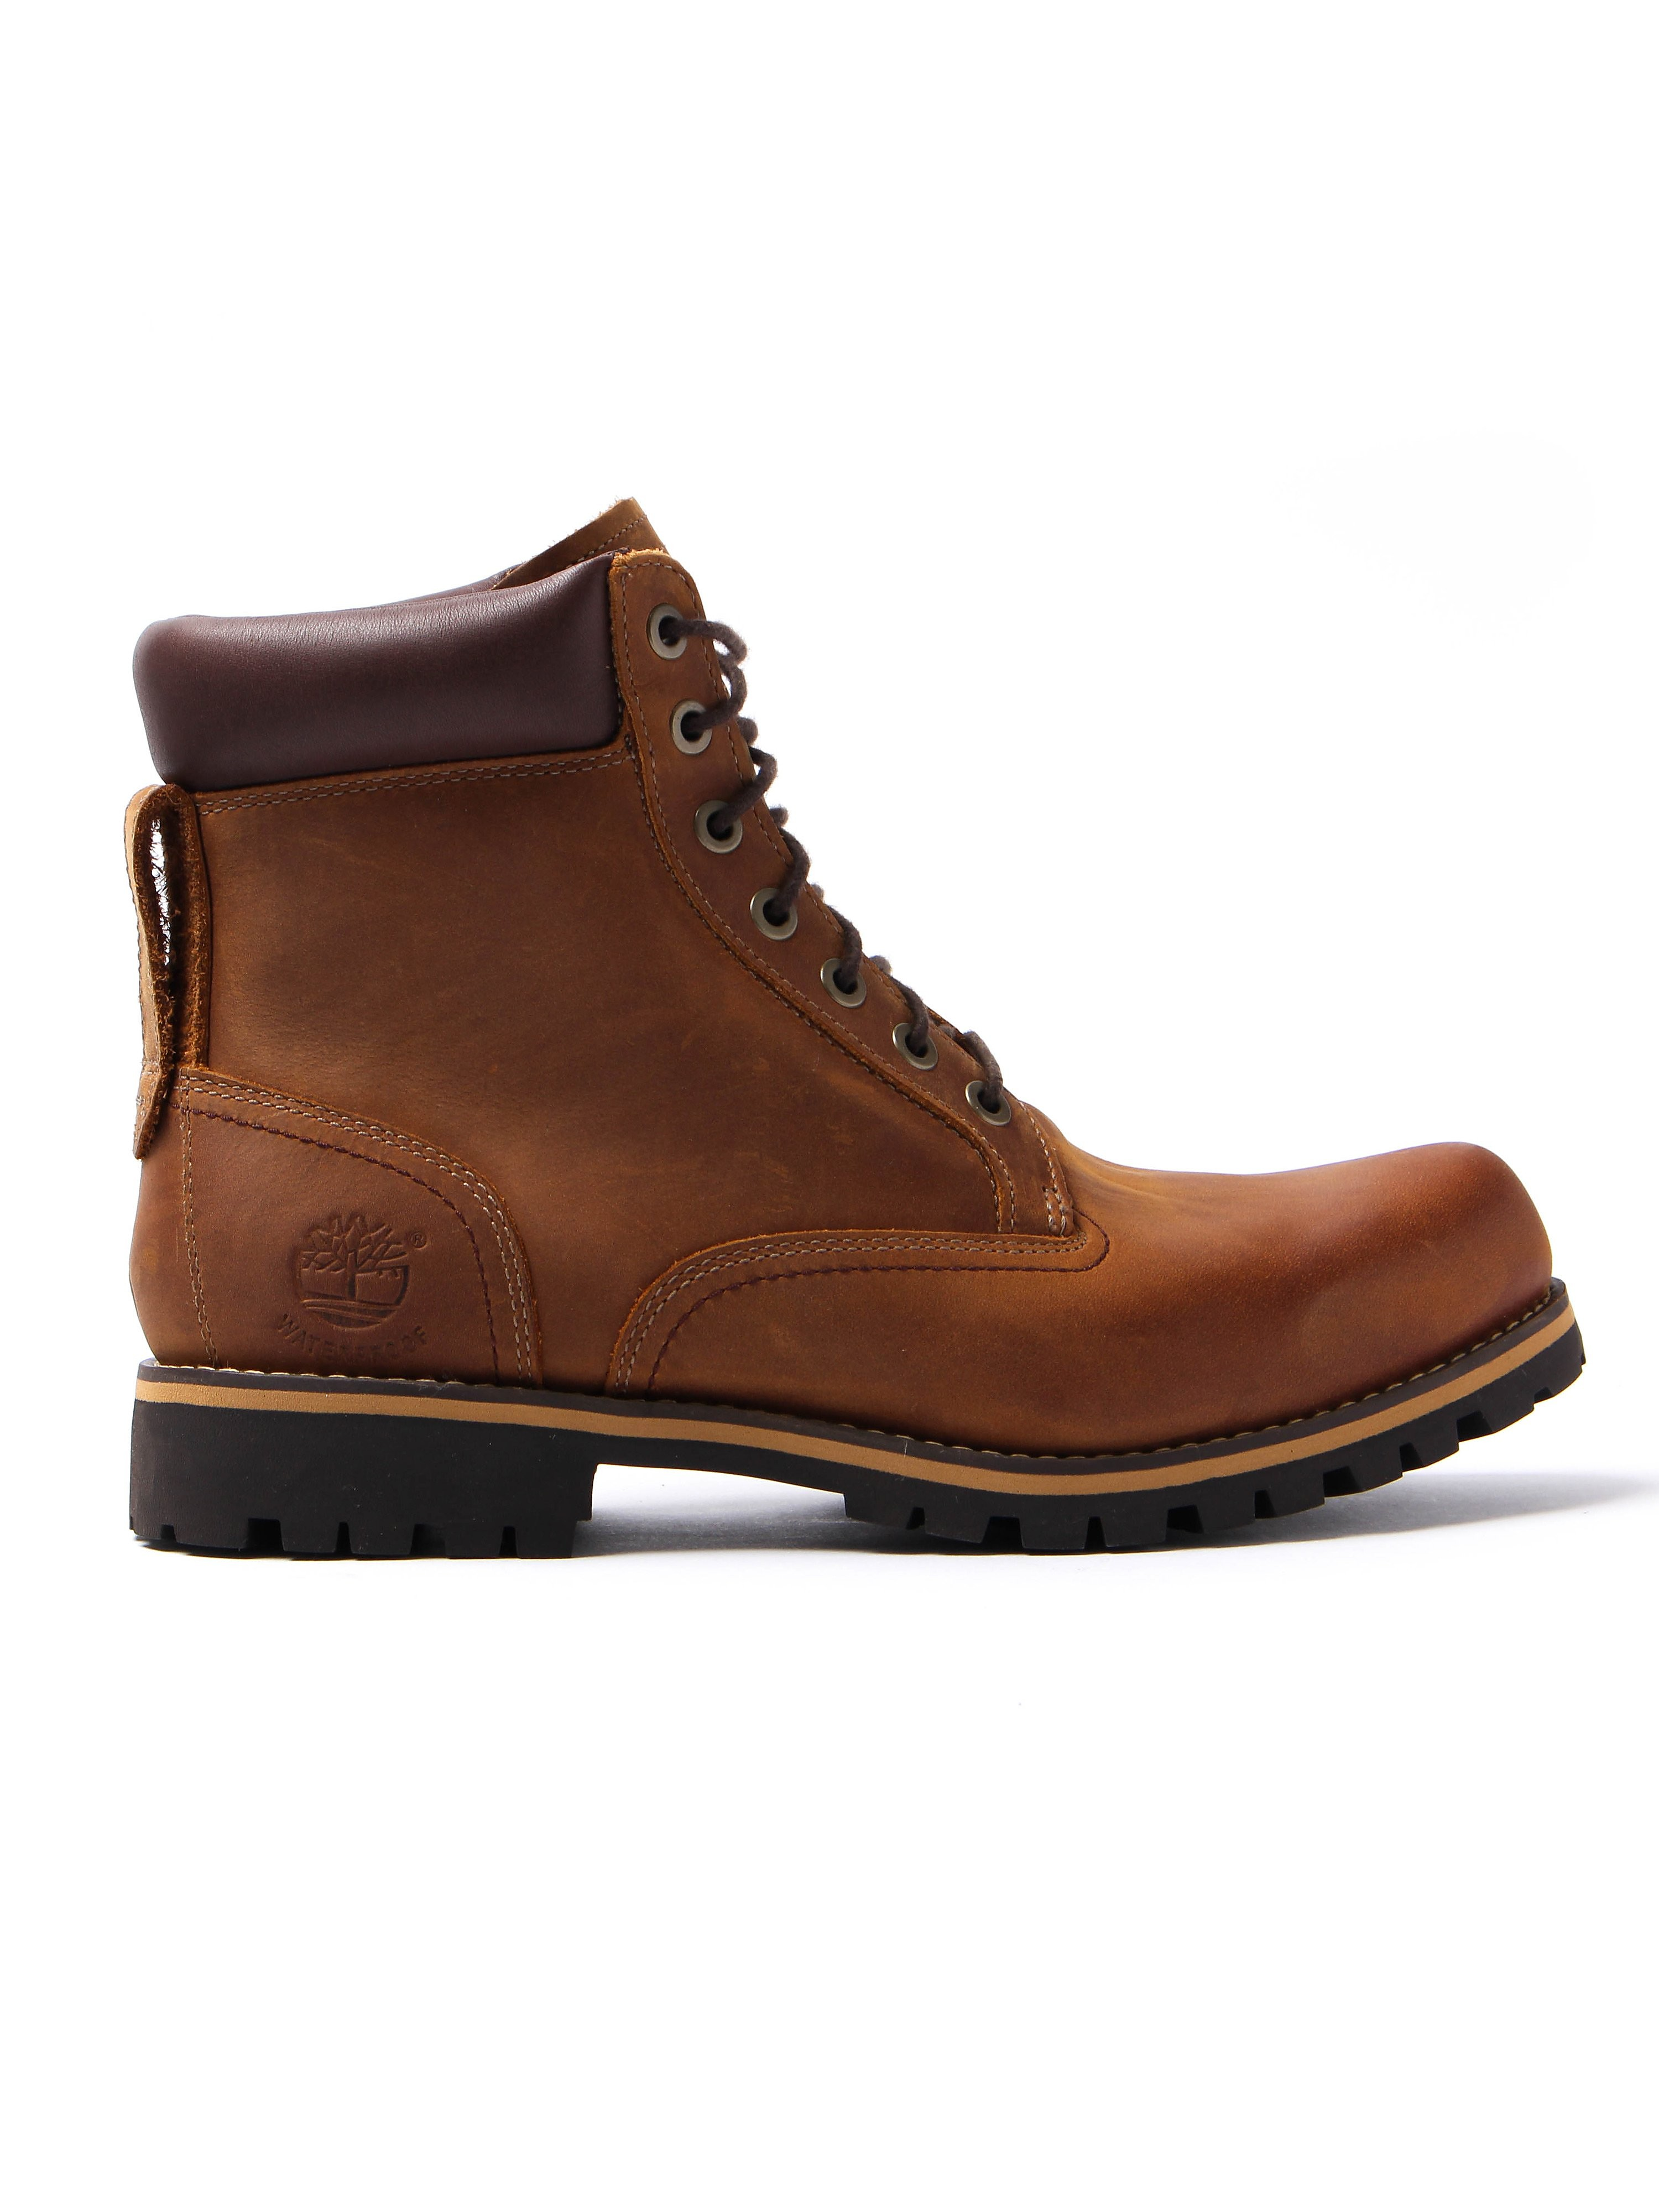 Timberland Mens 6 Inch Rugged - Copper Roughcut